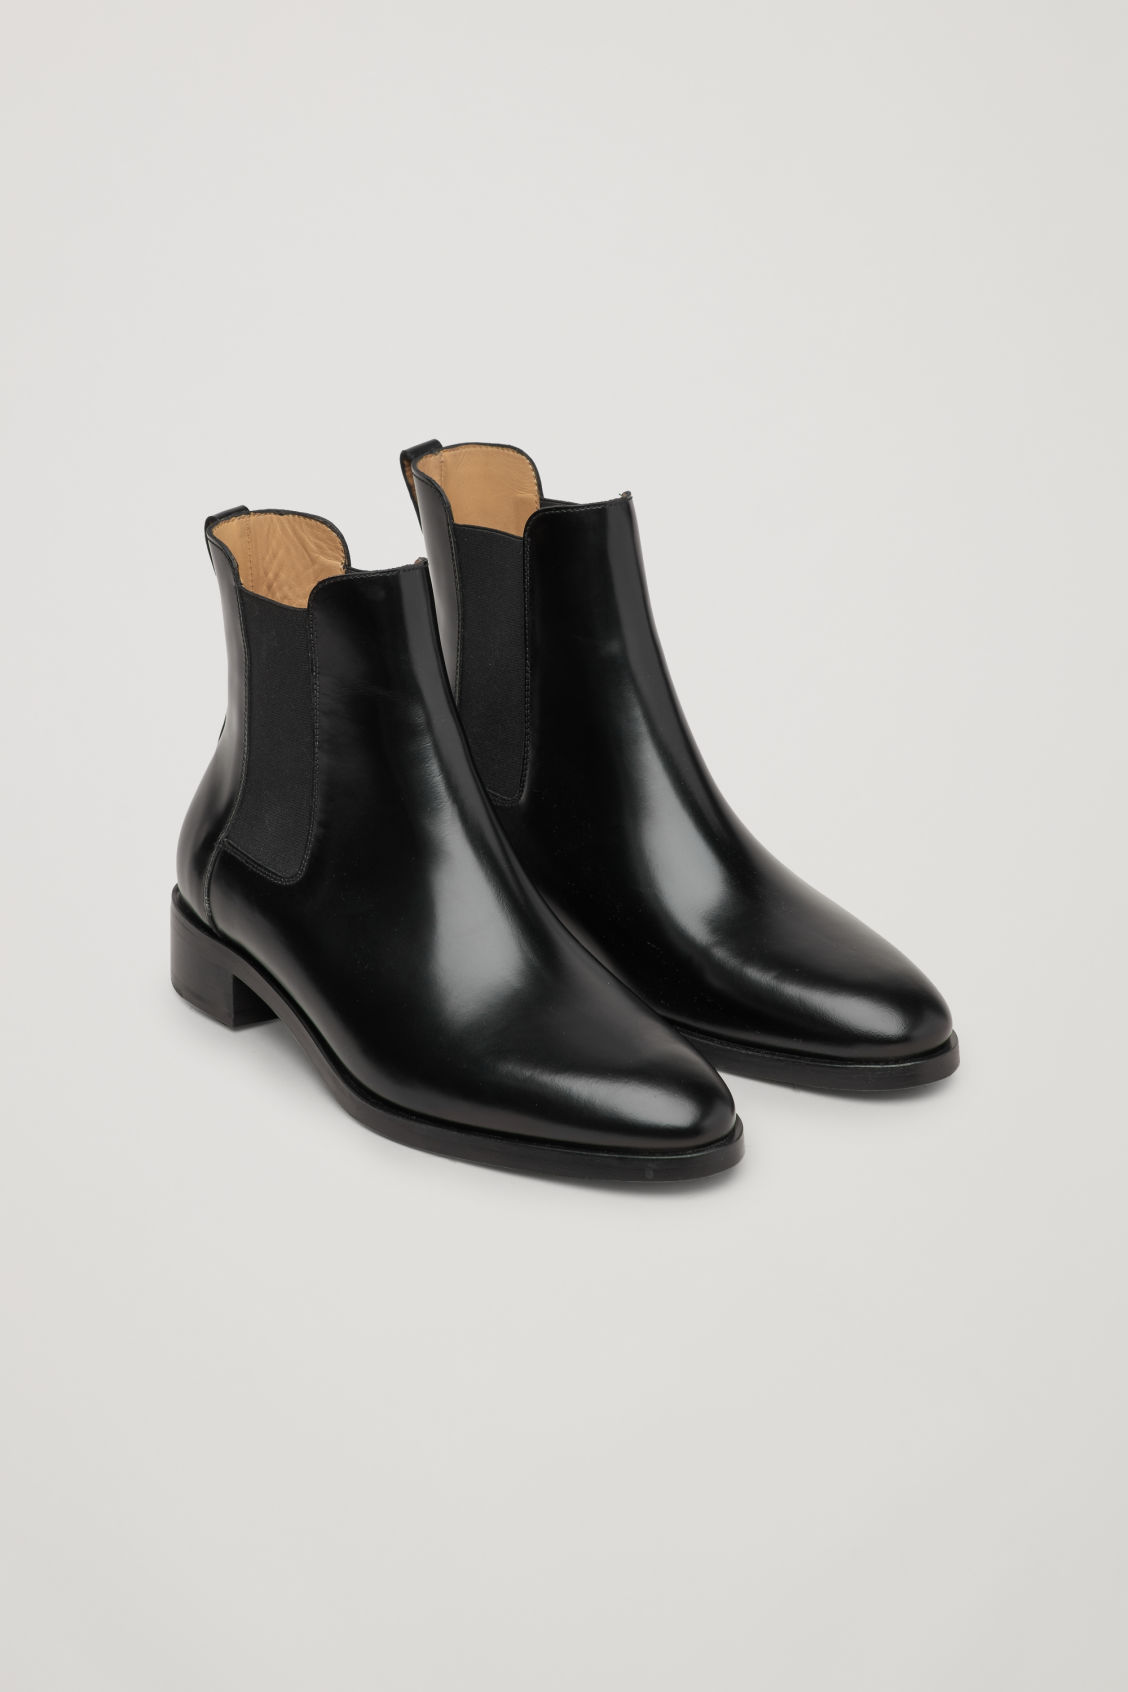 7daf9c5b25ef2 Front image of Cos chelsea boots in black